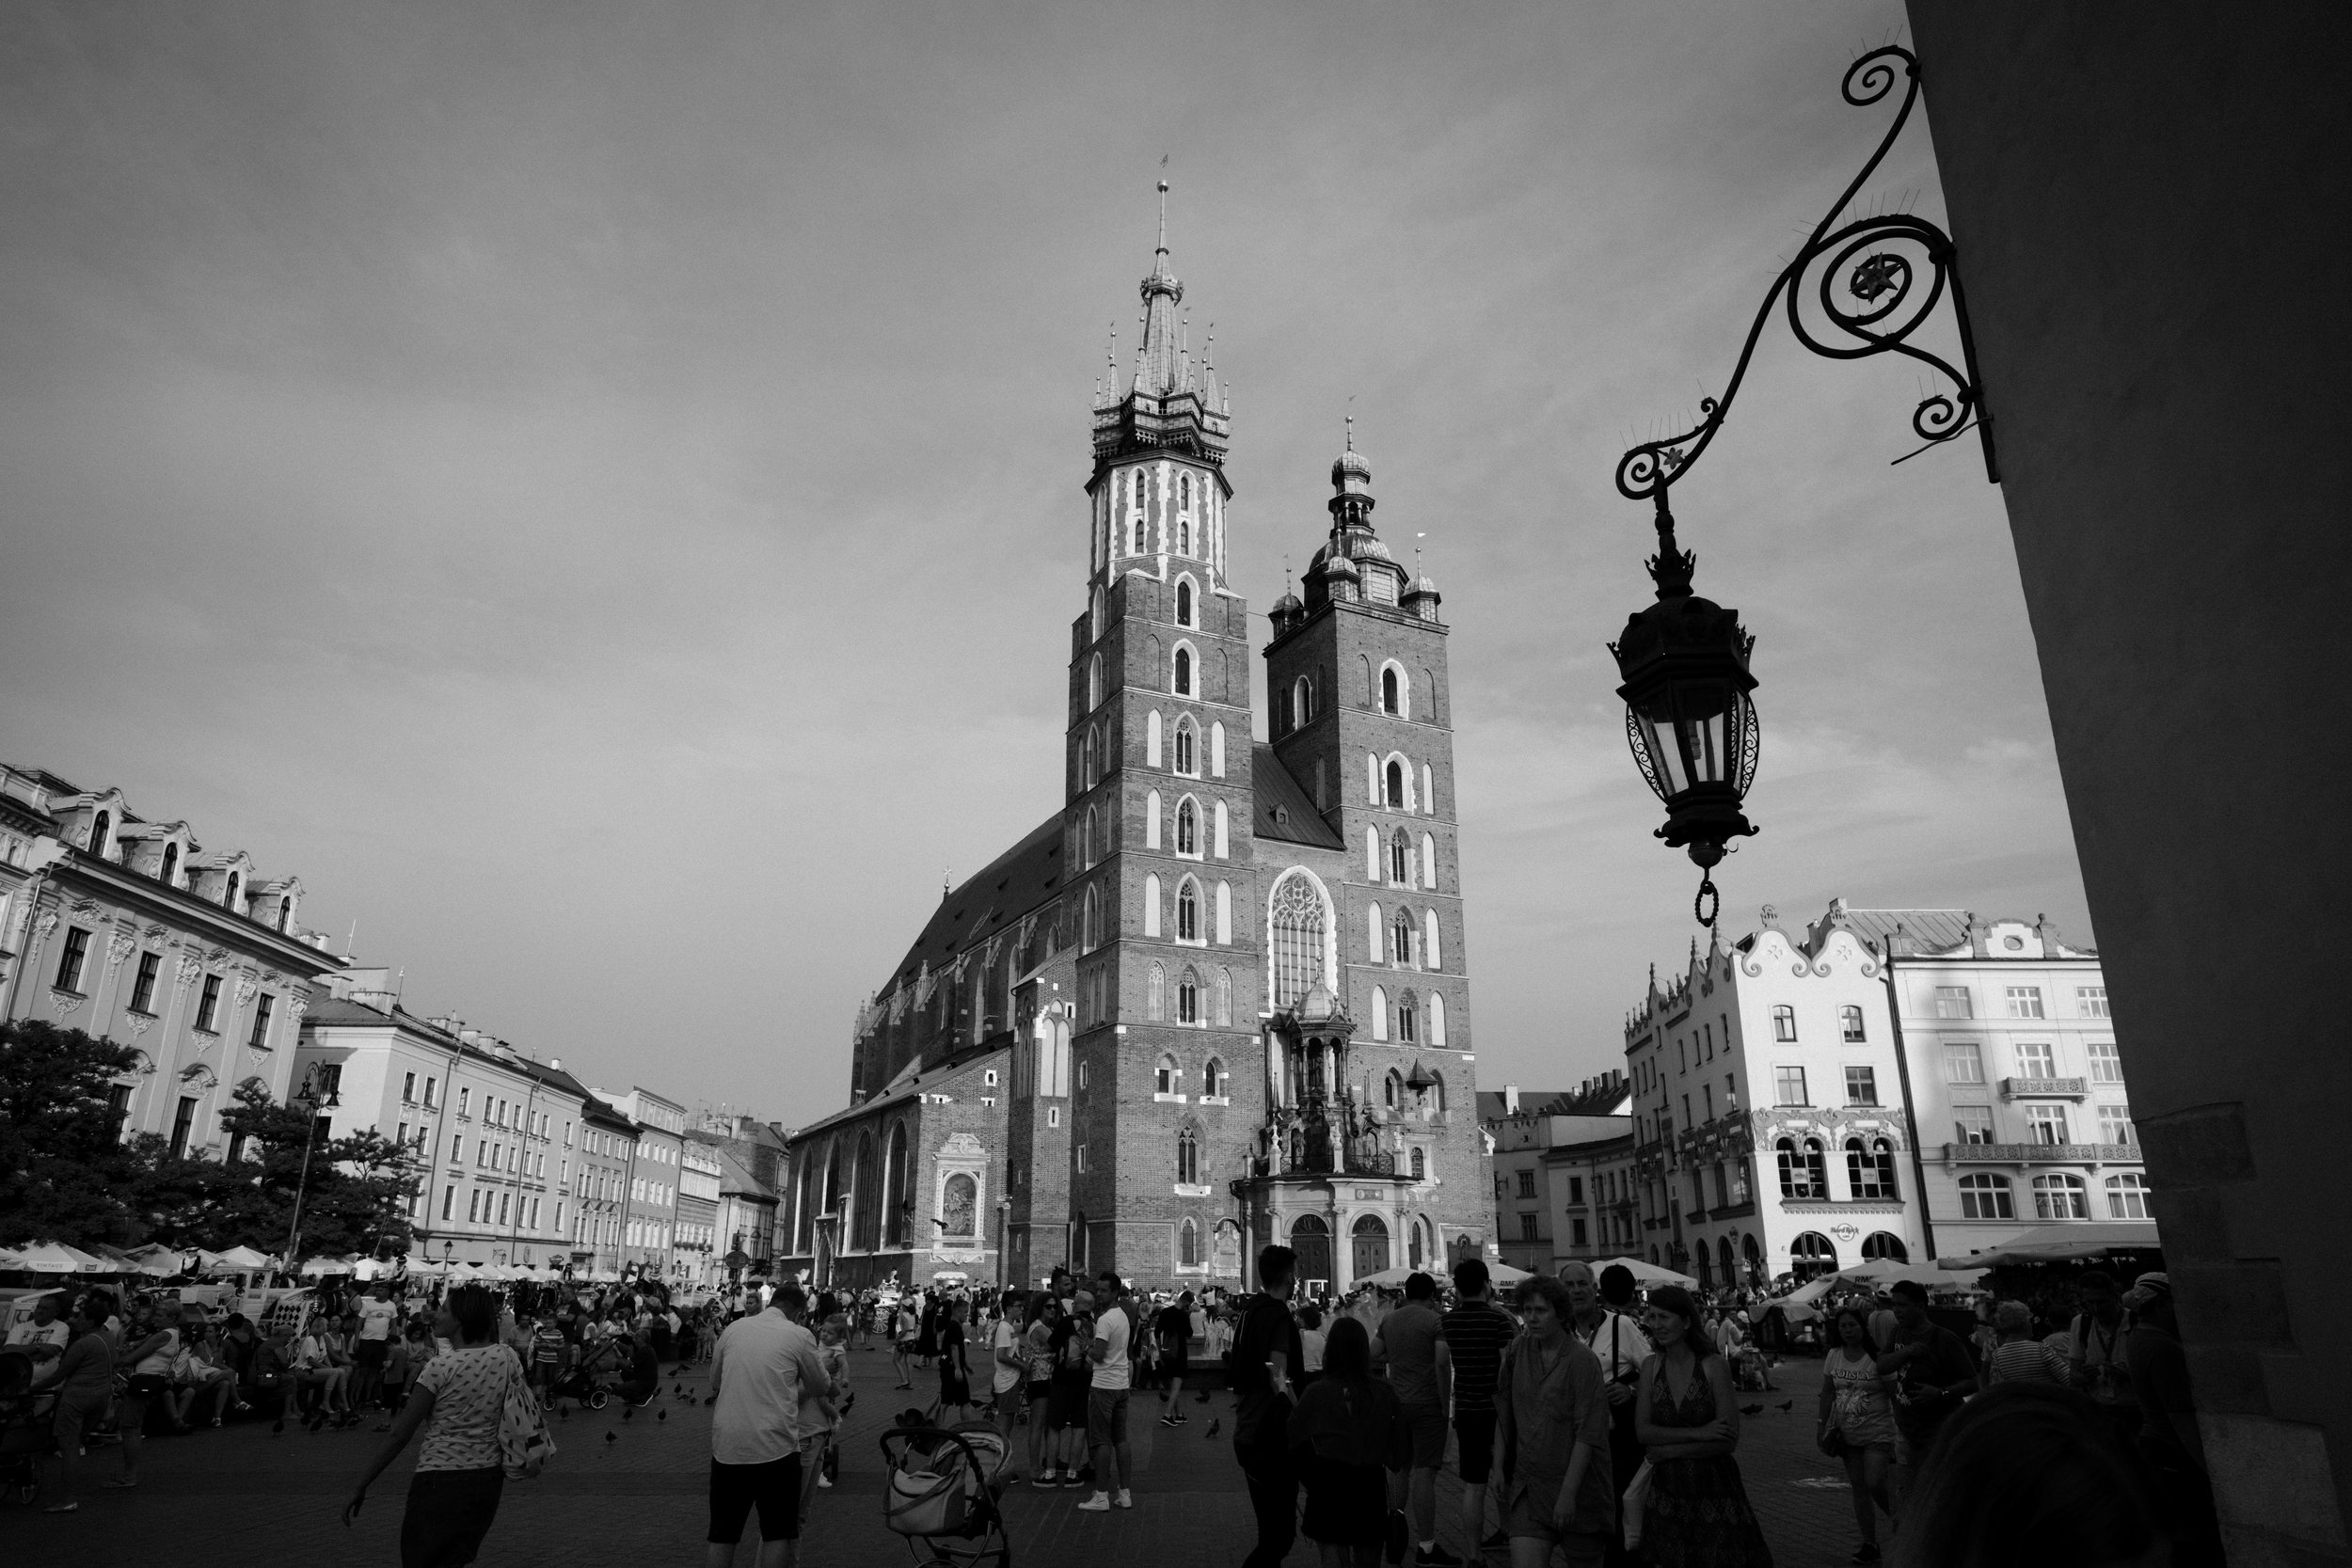 St. Mary's Basilica in the Main Square of Krakow, Poland